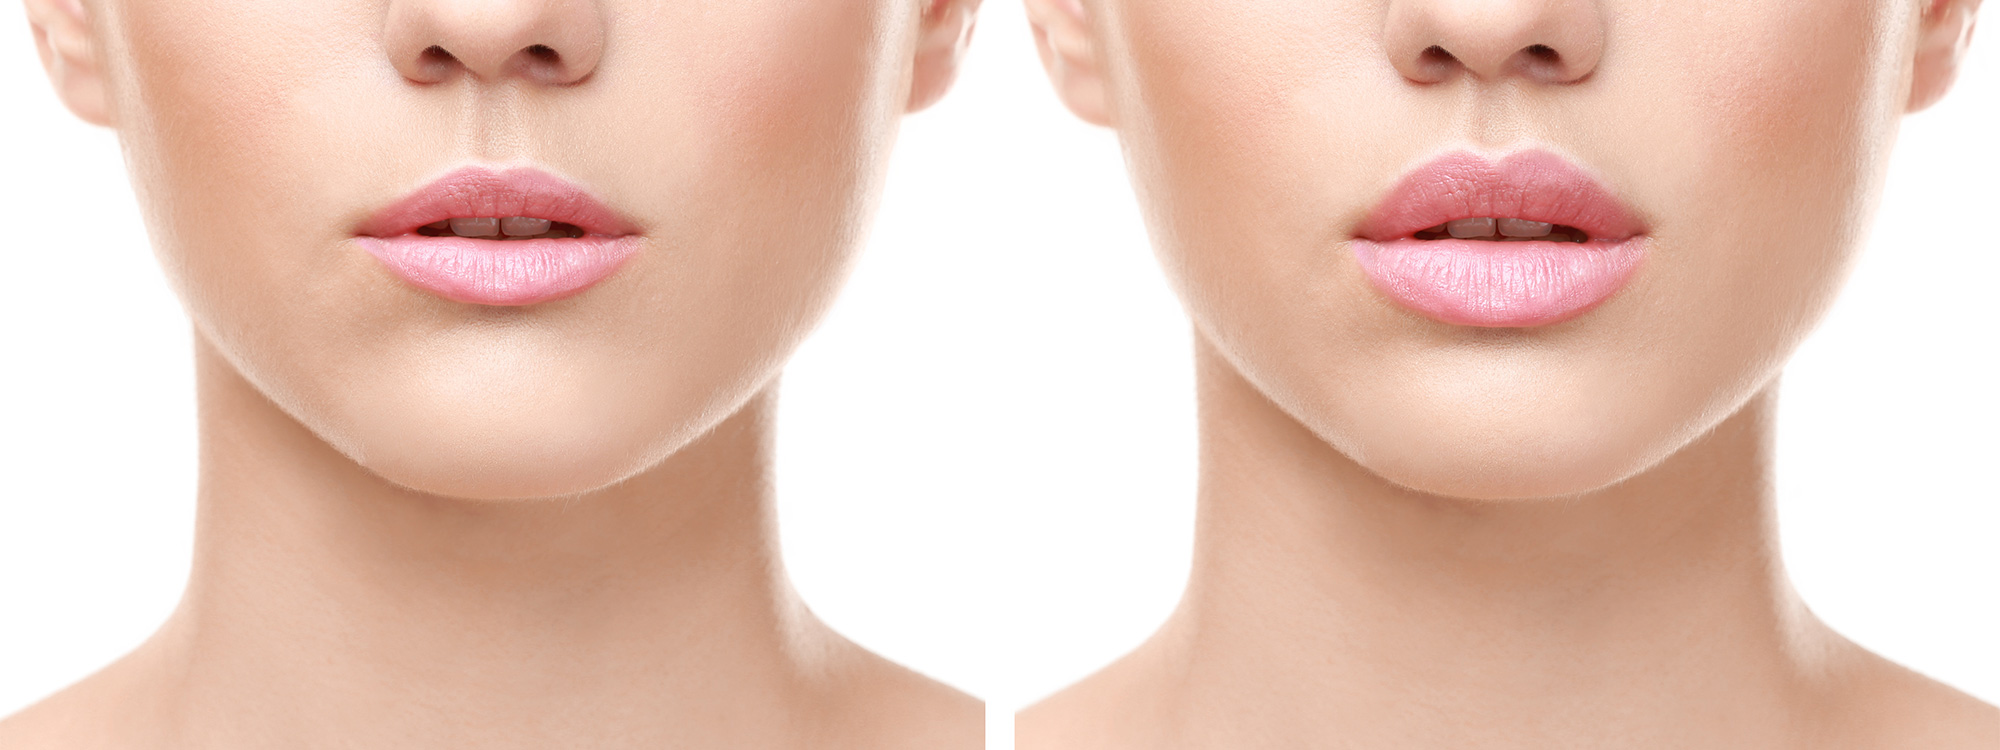 Lips-Augmentation-Experts-in-Toronto